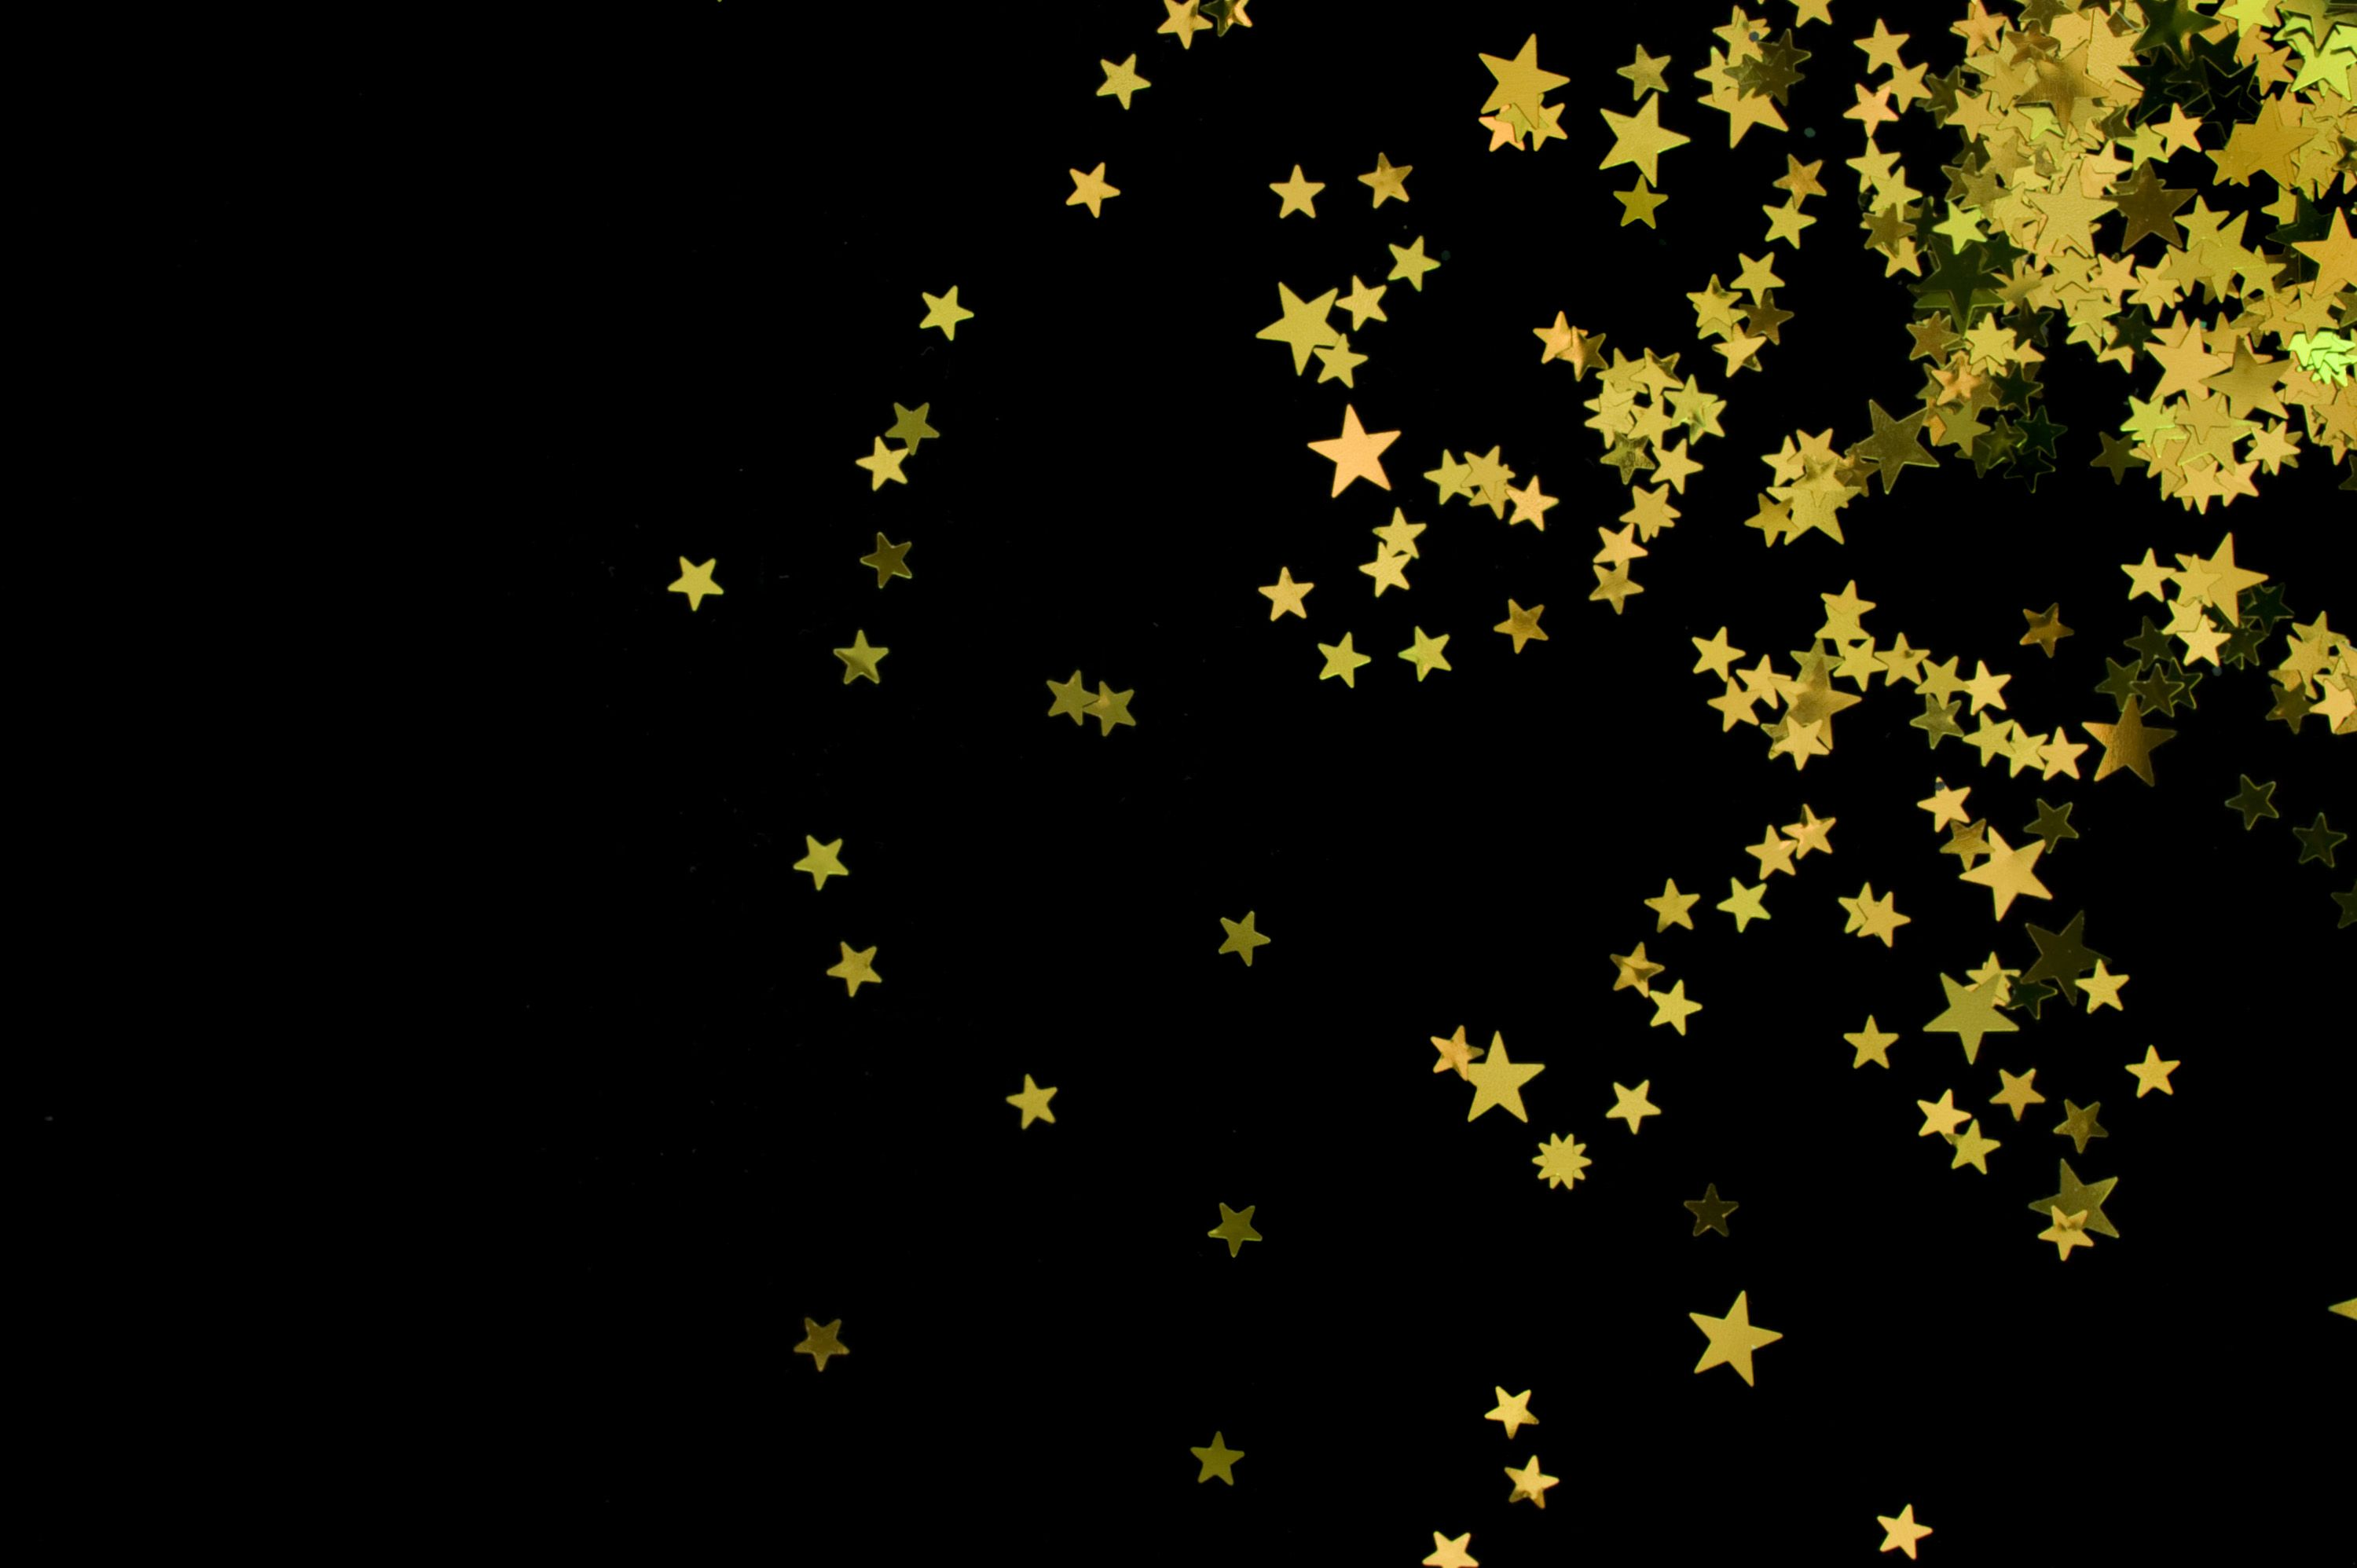 Yellow Christmas Yellow And Black Background Free Download Photos Images Pictures Gold Glitter Background Black Glitter Wallpapers Glitter Background